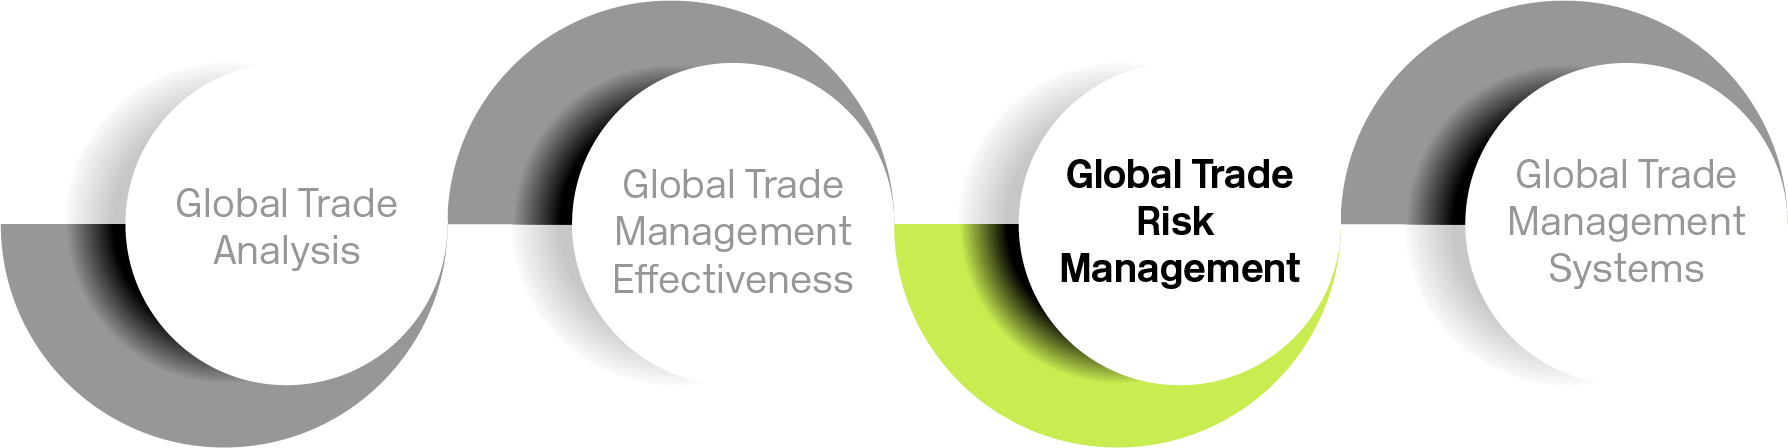 Global trade risk management